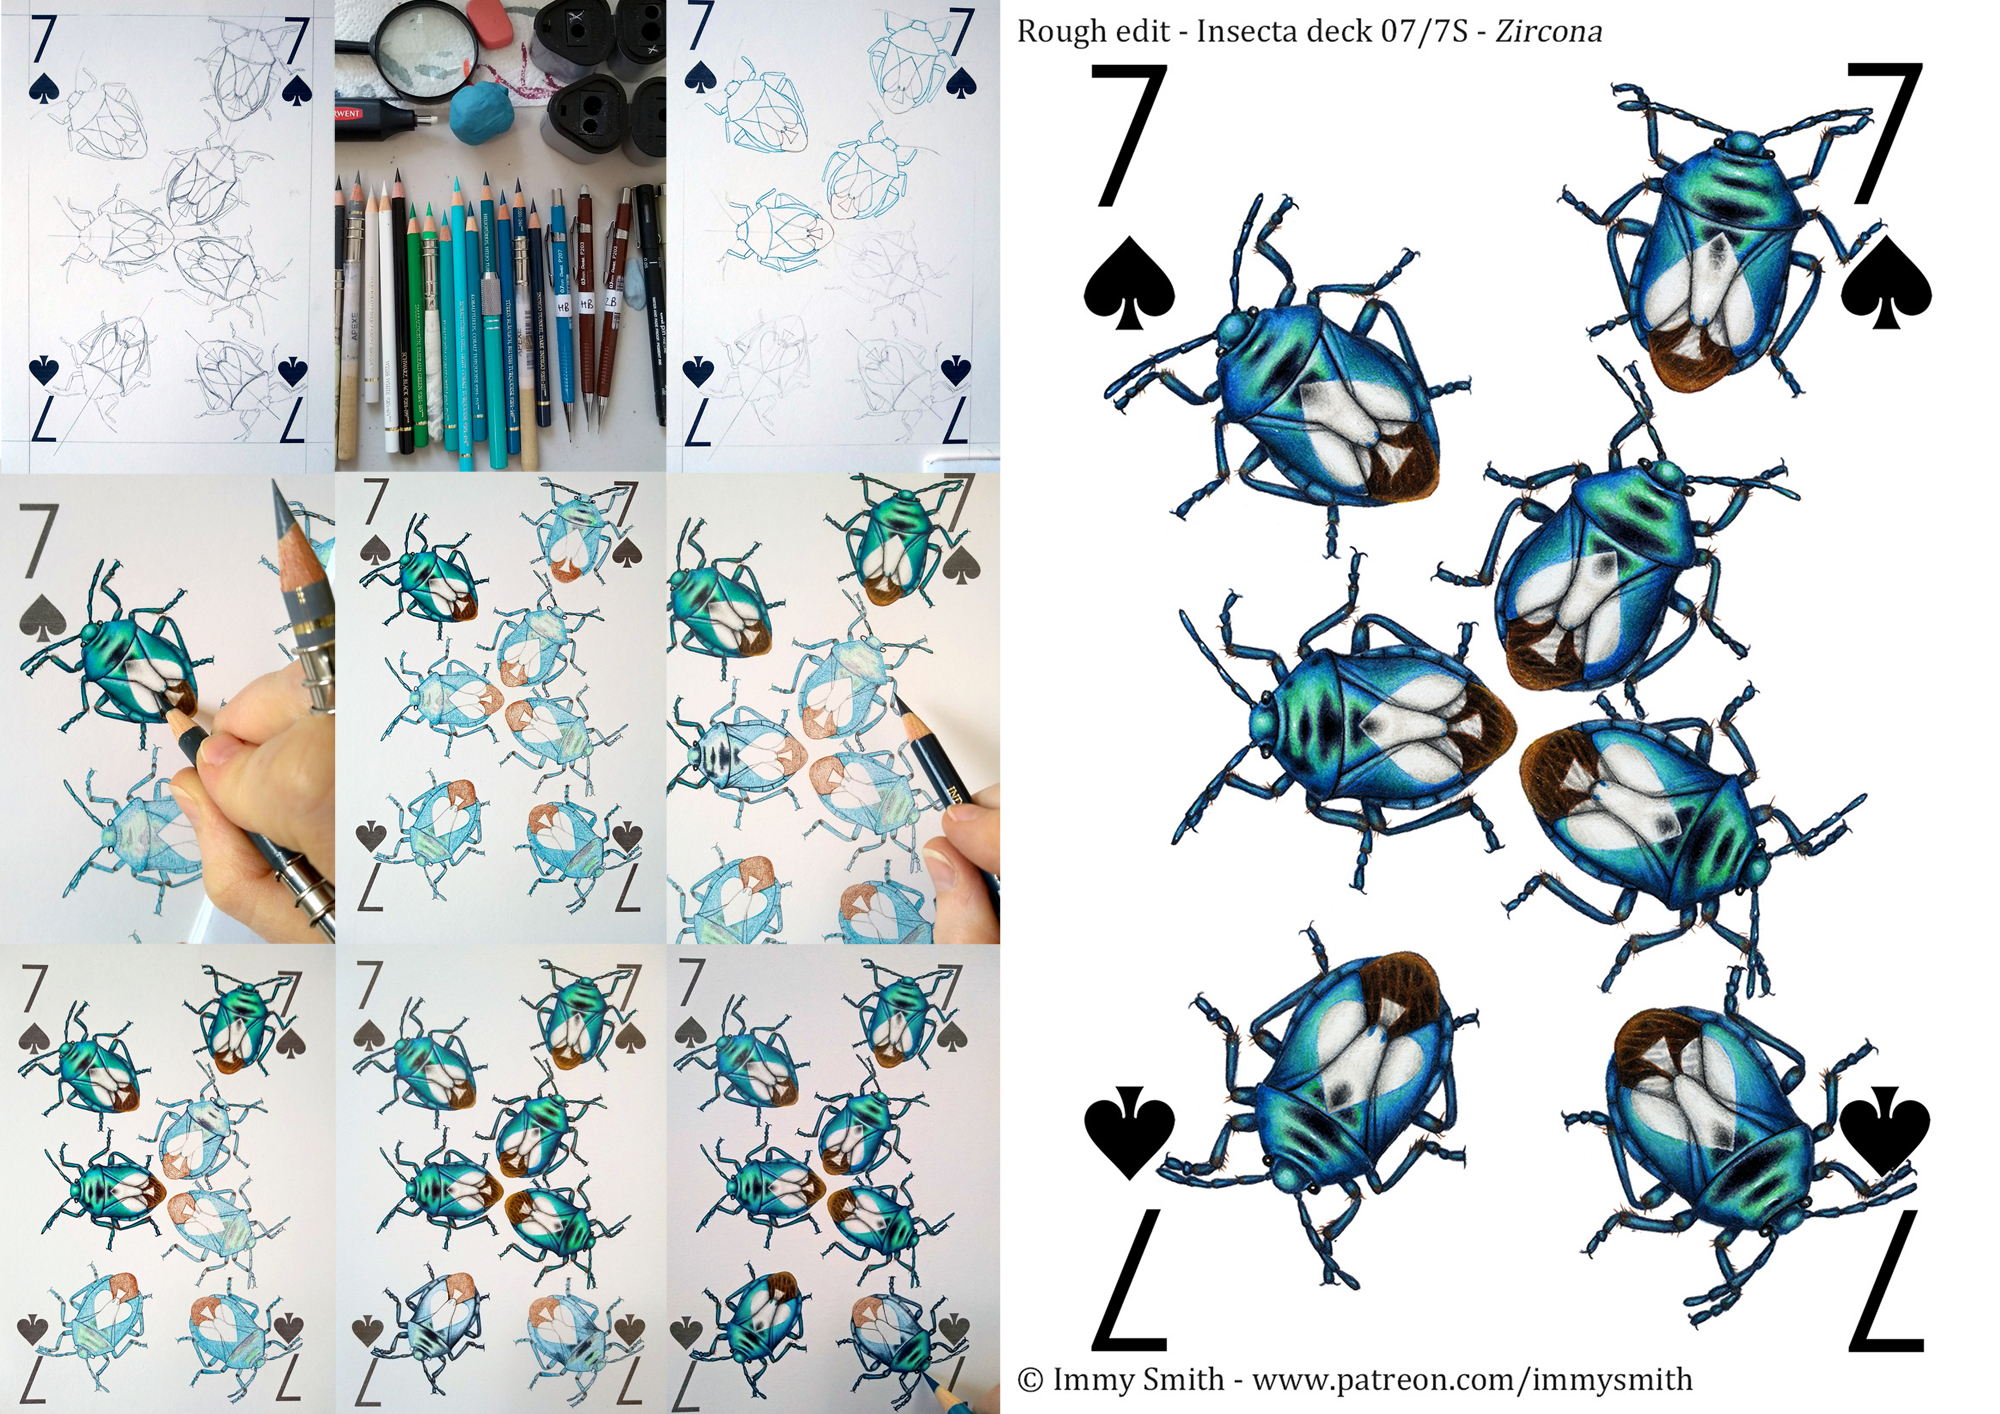 The Insecta Deck 7S card design being made, featuring metallic shield bugs drawn in polychromos pencils, & a rough edit. Shadows under each creature will be added to the designs after all the insects are drawn, in the final edit; this ensures consistency across the deck.